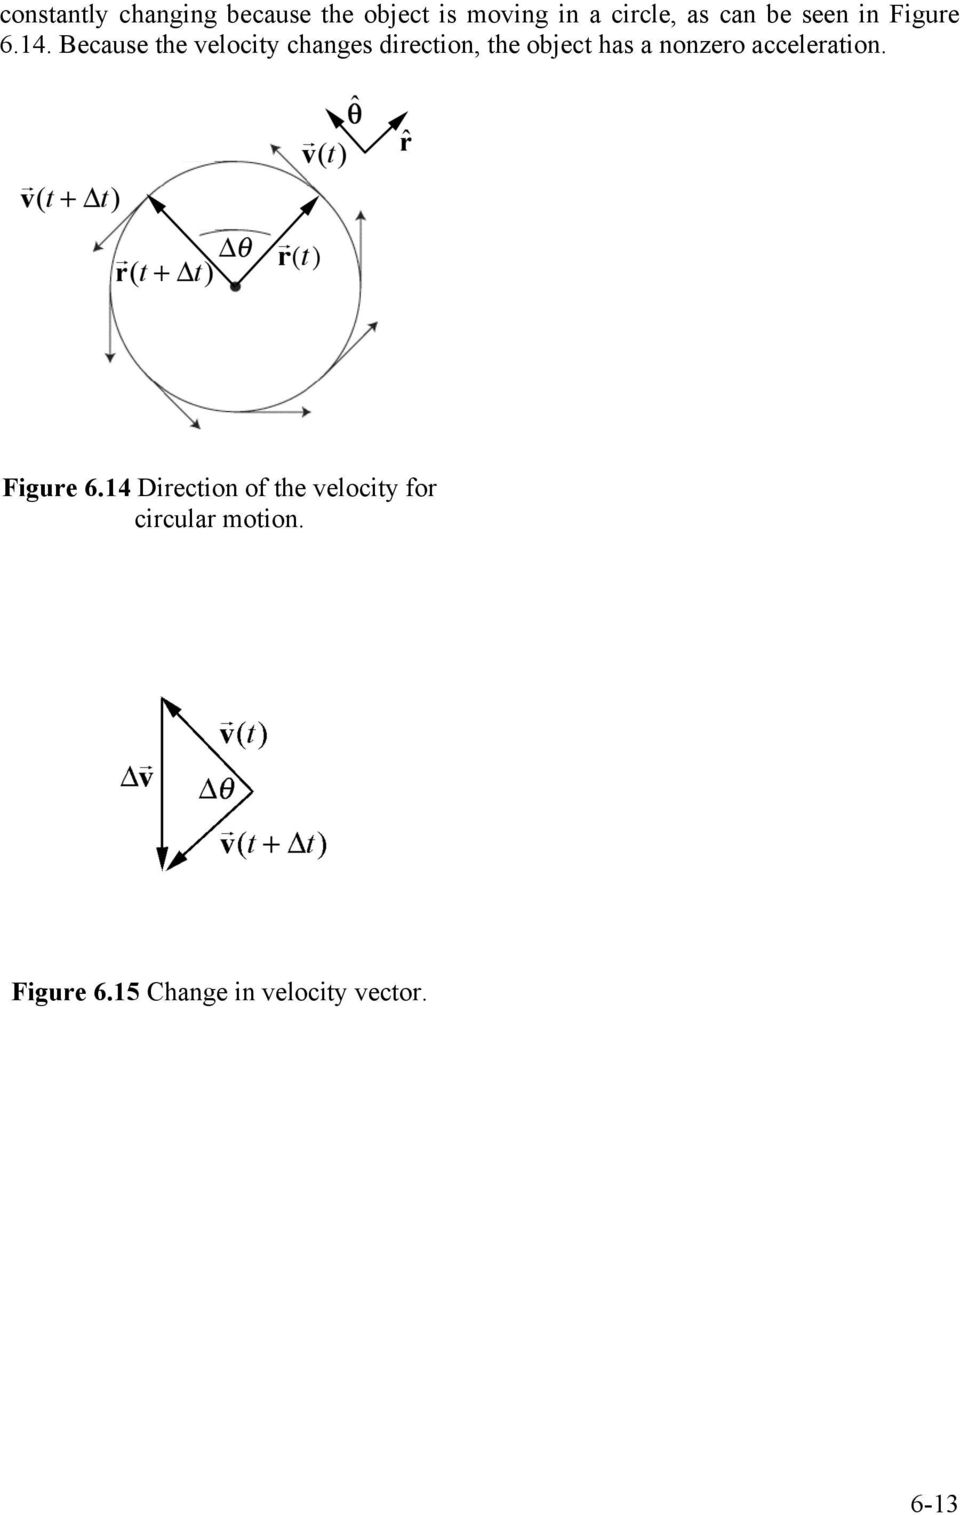 Because the velocity changes direction, the object has a nonzero